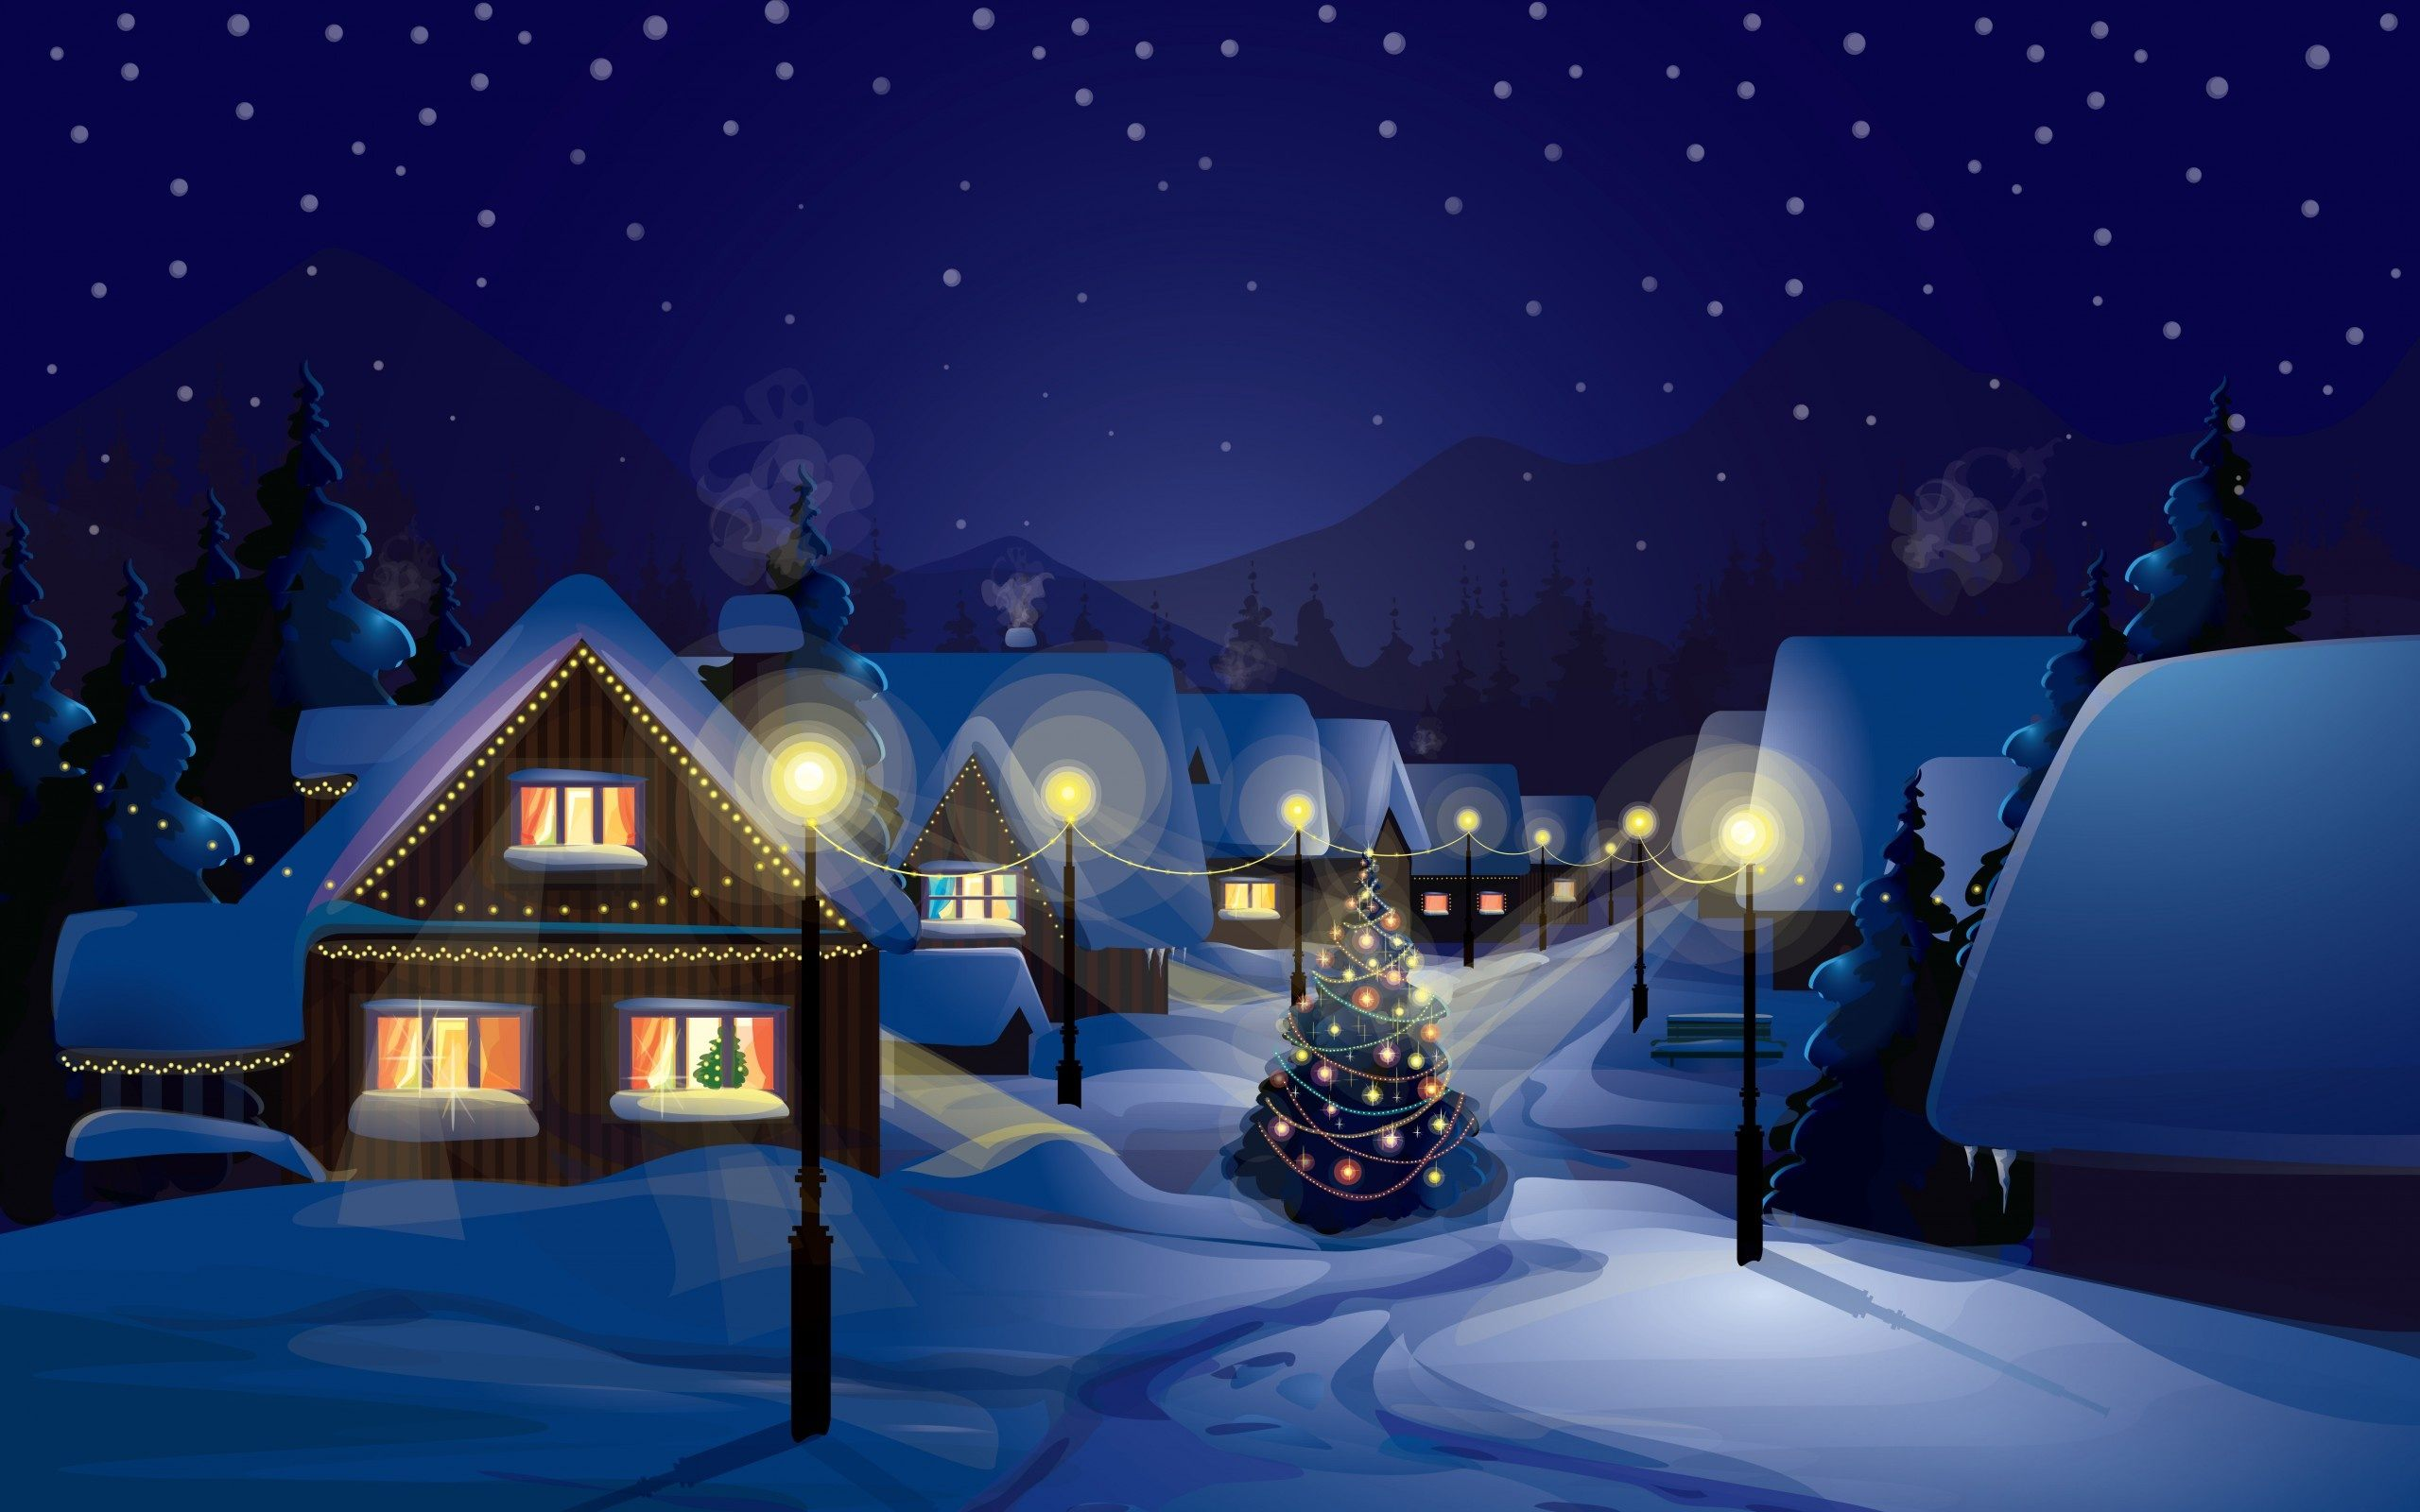 Christmas art wallpapers high quality download free - Art village wallpaper ...